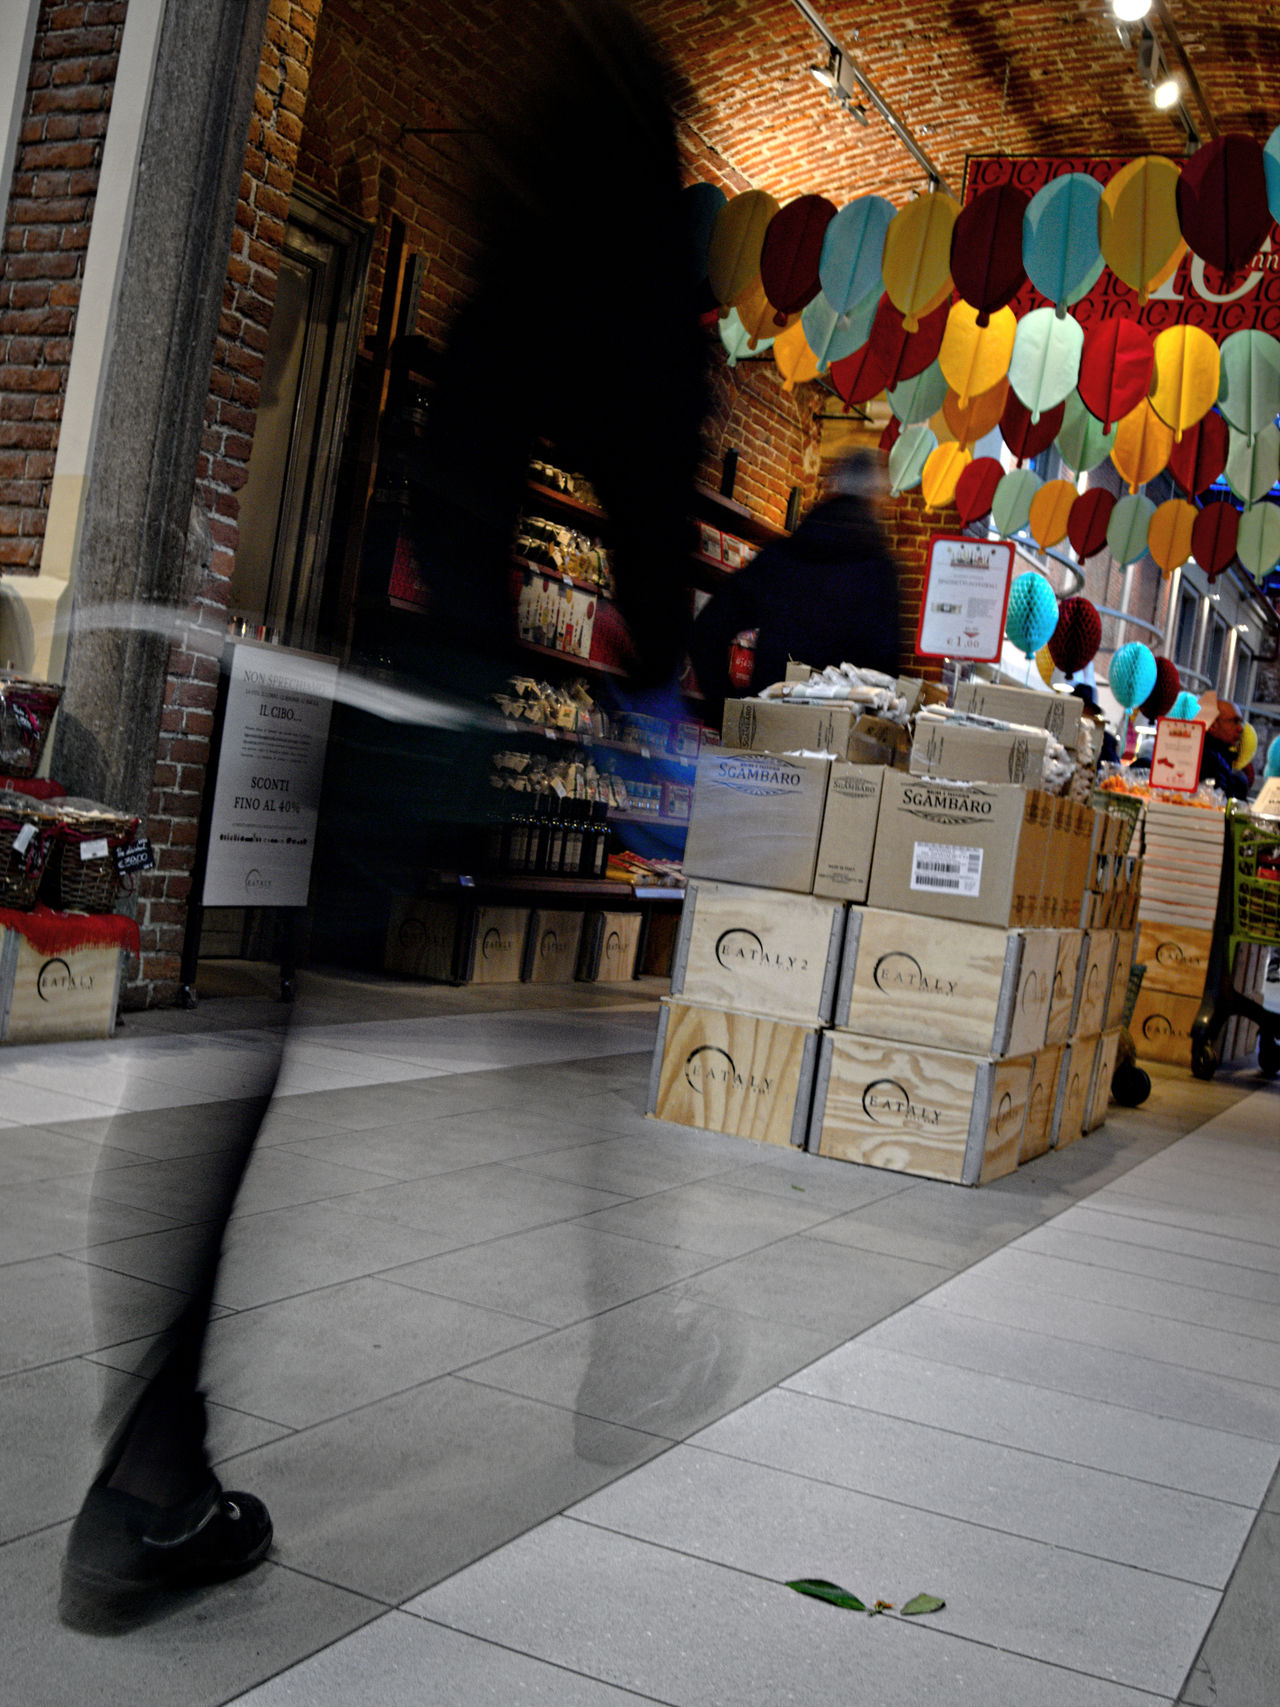 Crates Crates, Boxes, Wood, Wooden, Cargo Day Eataly Farmers Market Food And Drink Food Market Food Shop Indoors  Local Food Local Market Long Exposure People And Places People Walking  Slowfood